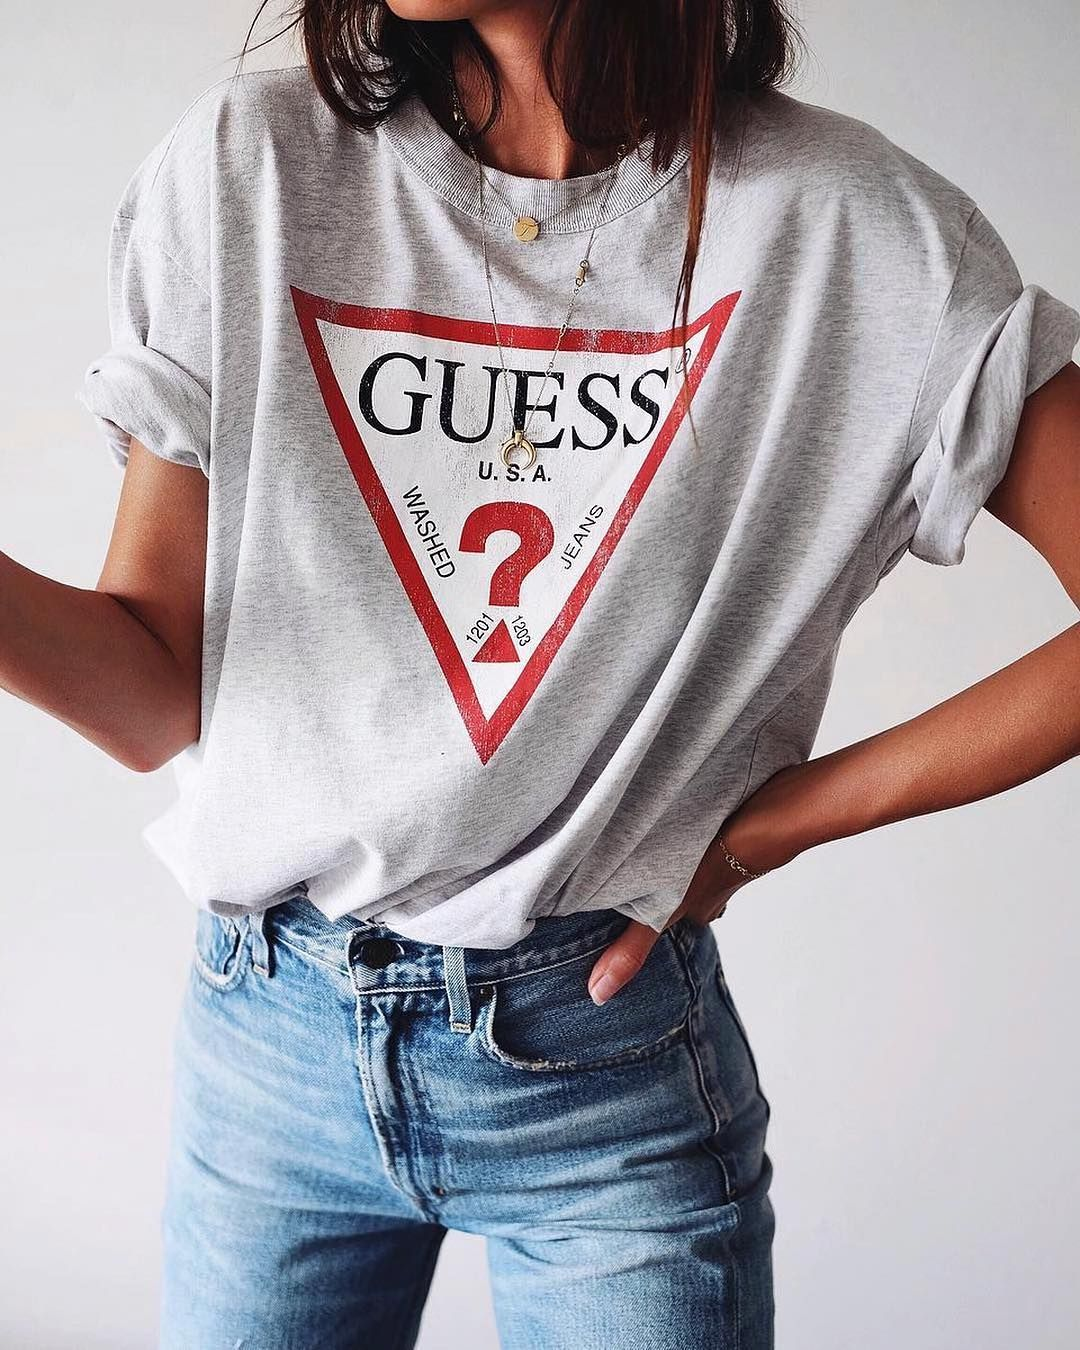 guess t shirt outfit